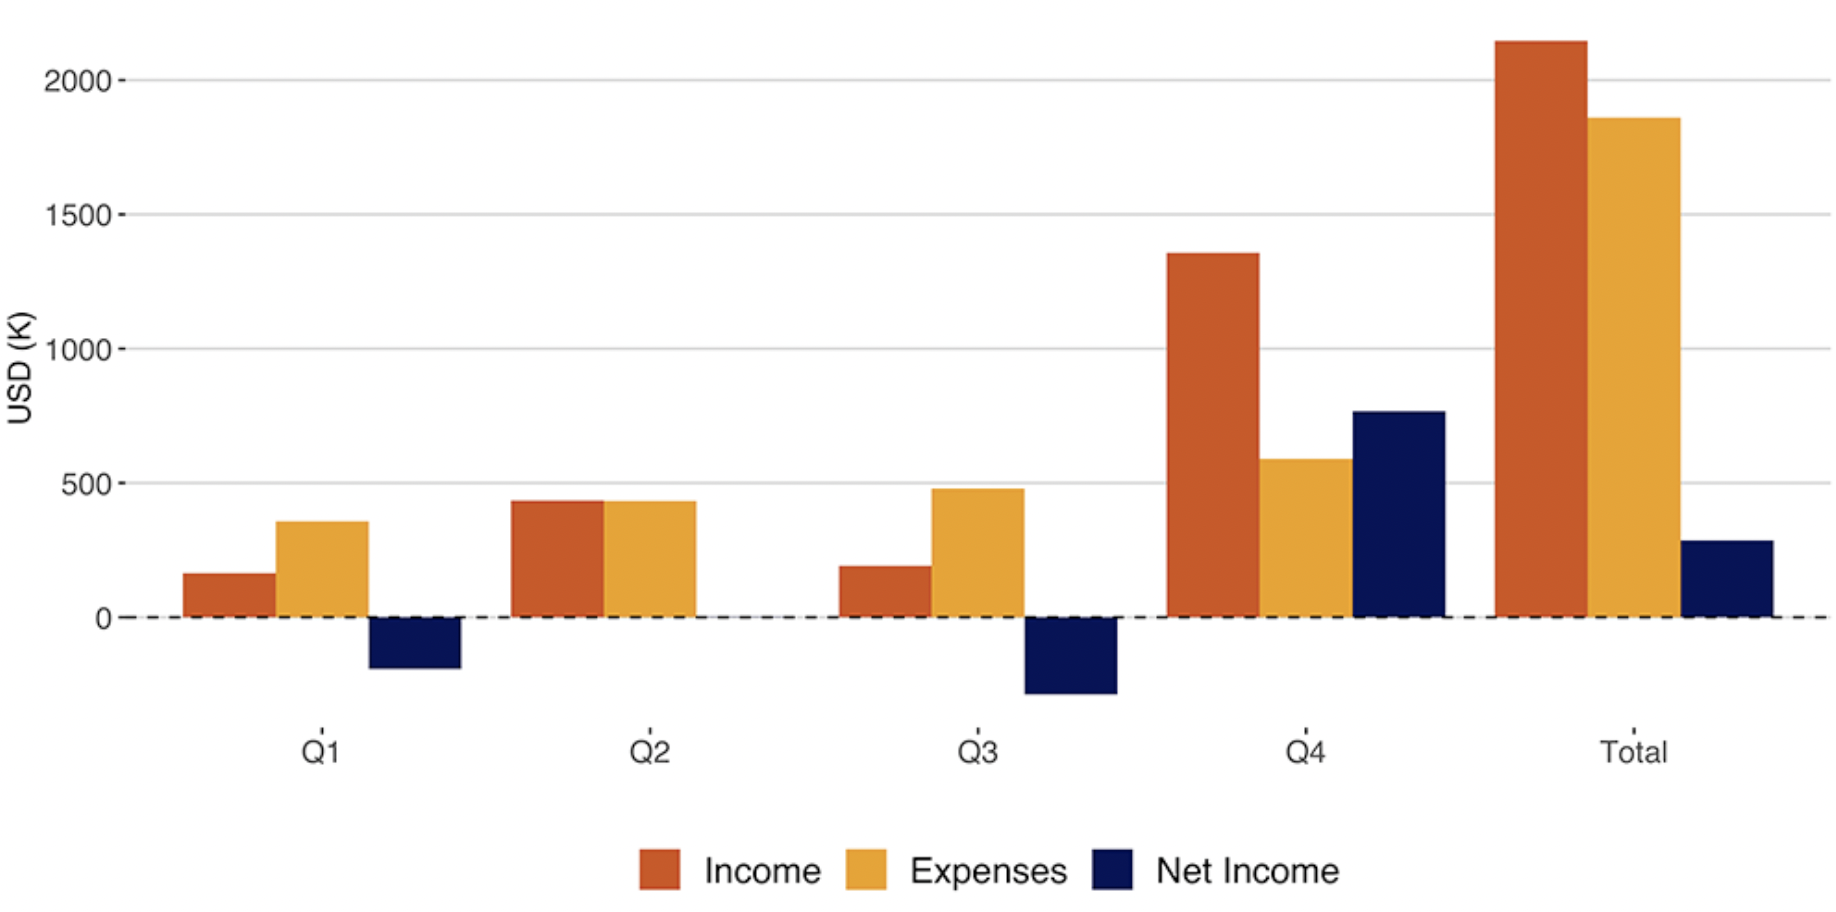 Bar graph showing Carpentries quarterly Income, Expenses, and Net Income with Q4 having most income